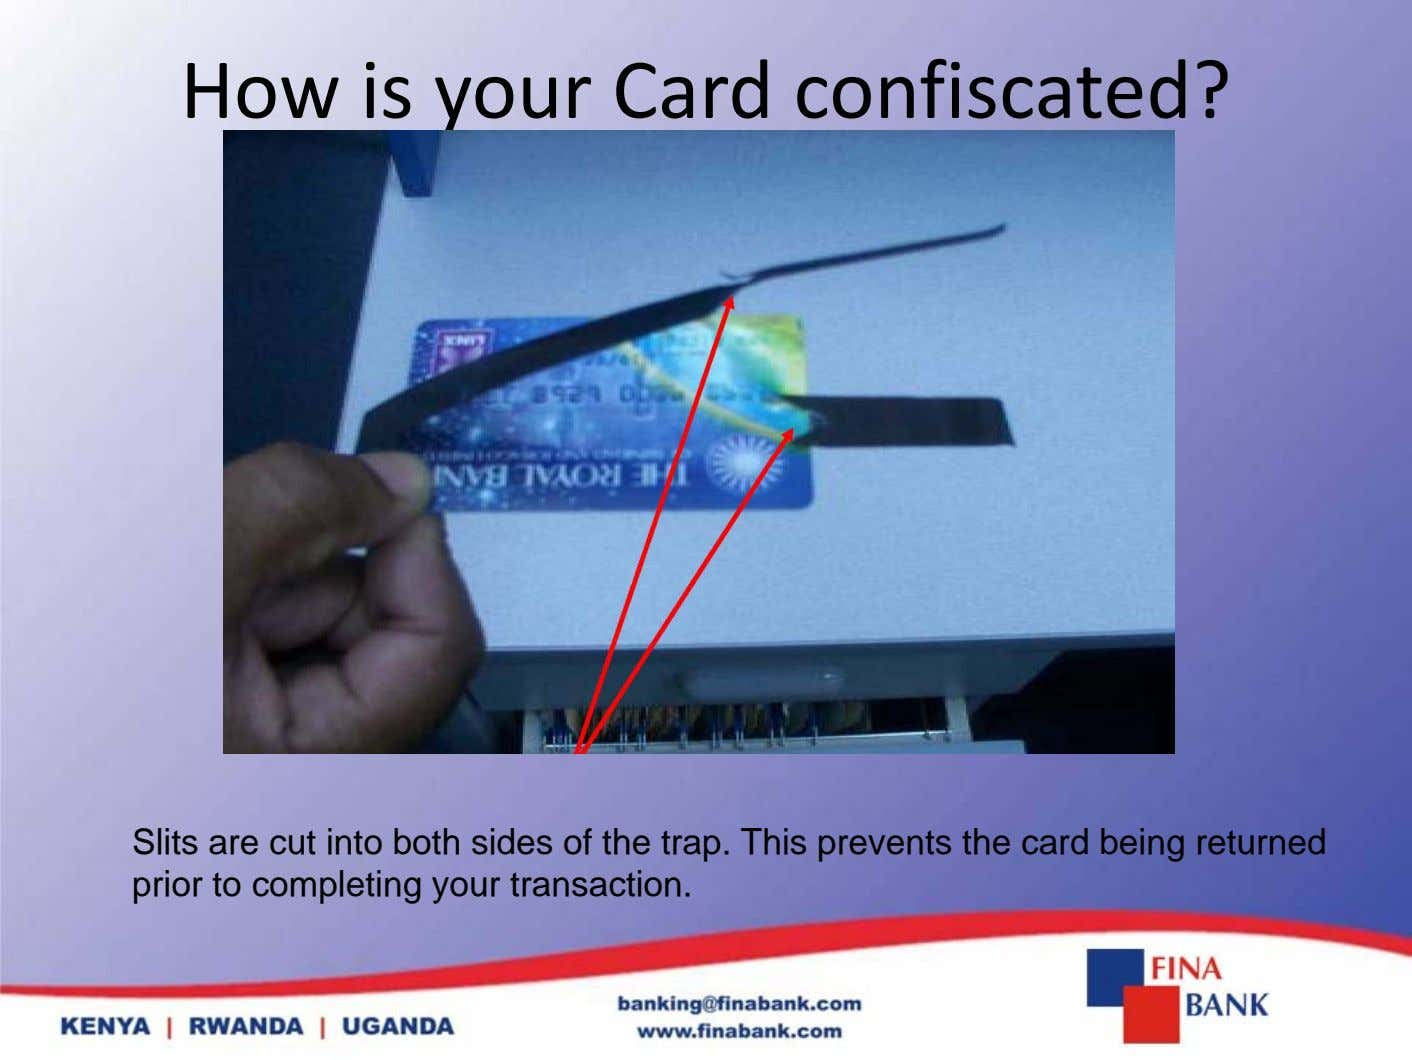 How is your Card confiscated? Slits are cut into both sides of the trap. This